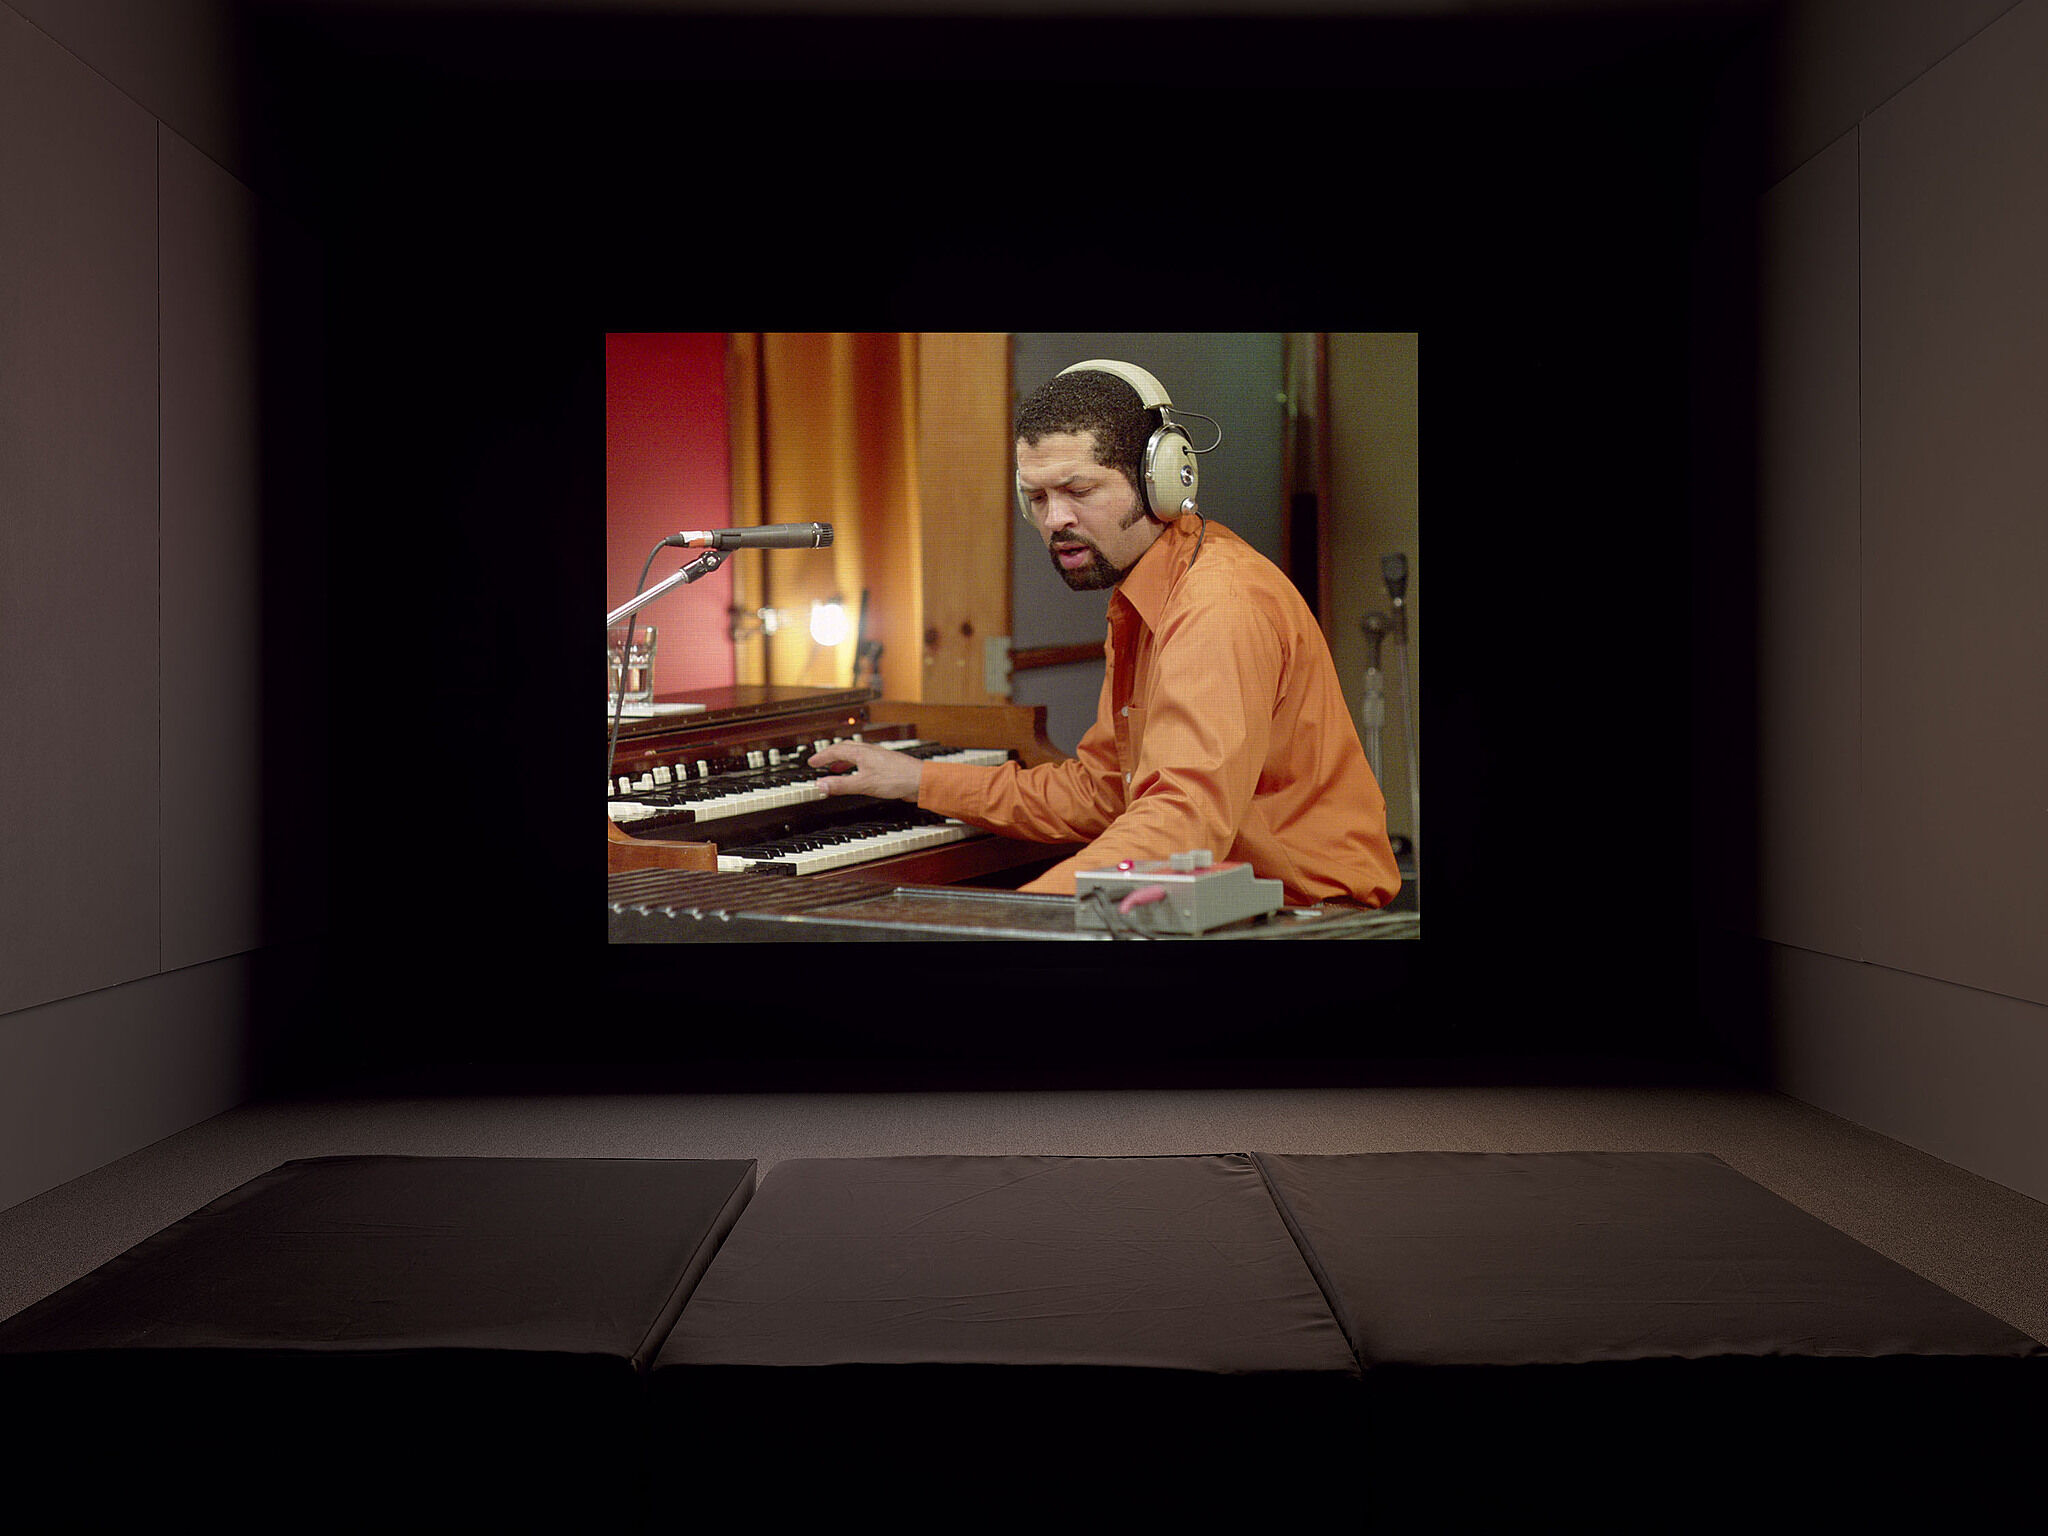 A video projection of a person playing piano